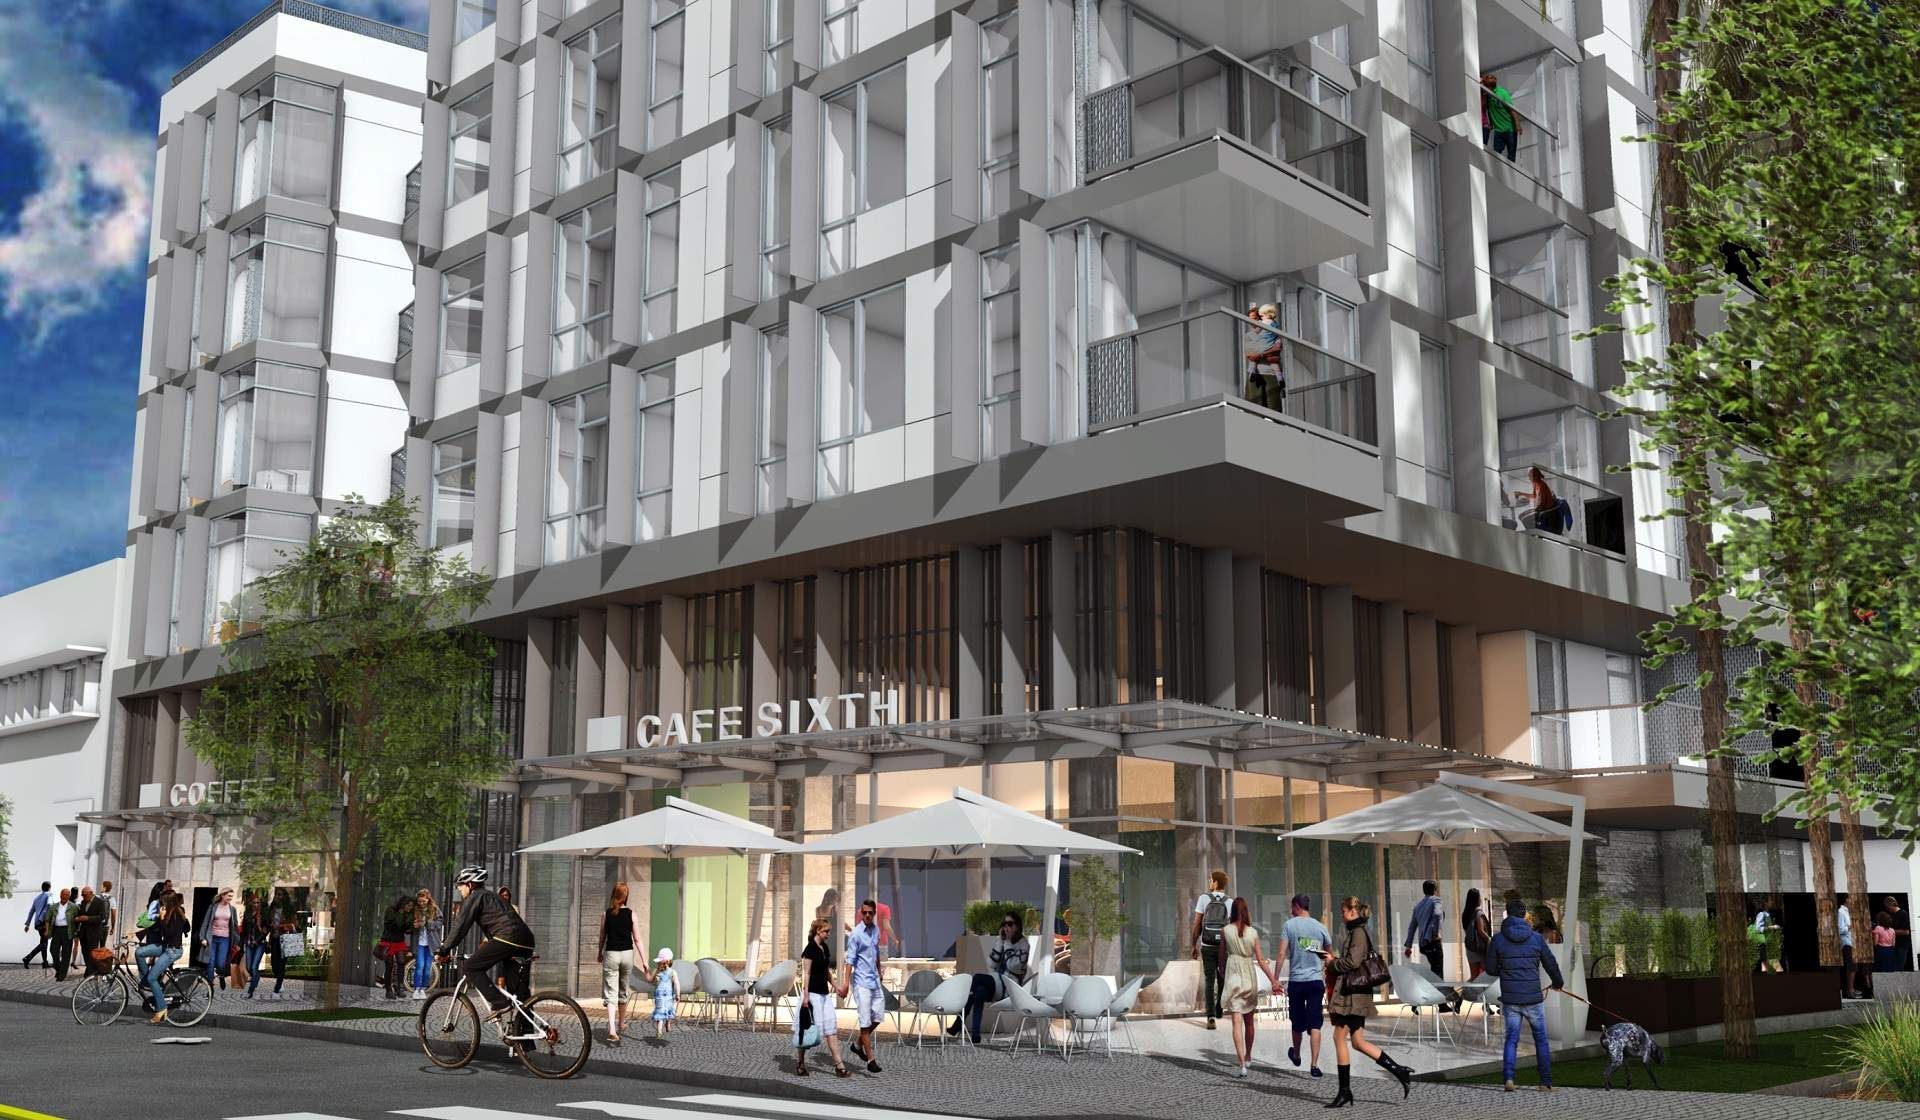 Revised Look For The Mixed Use Building Planned Next To The Santa Monica Library Urbanize La Santa Monica Mix Use Building Building